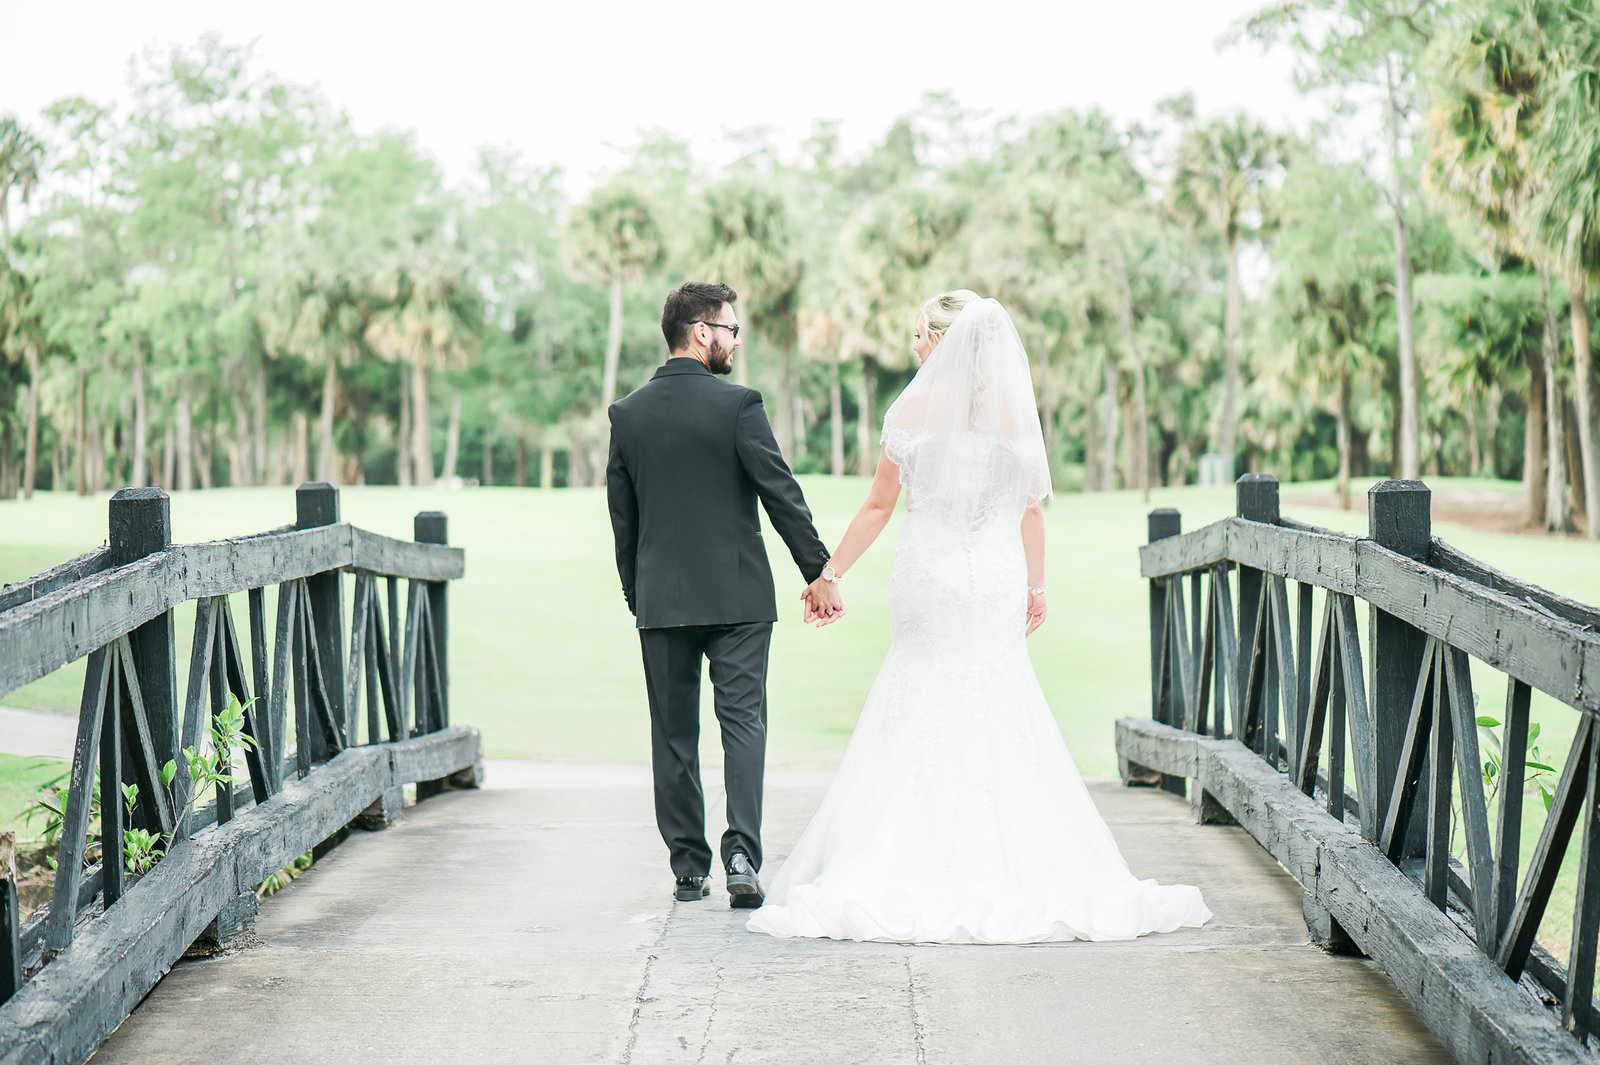 Rustic Wedding - Myacoo Country Club Wedding - Palm Beach Wedding Photography by Palm Beach Photography, Inc.